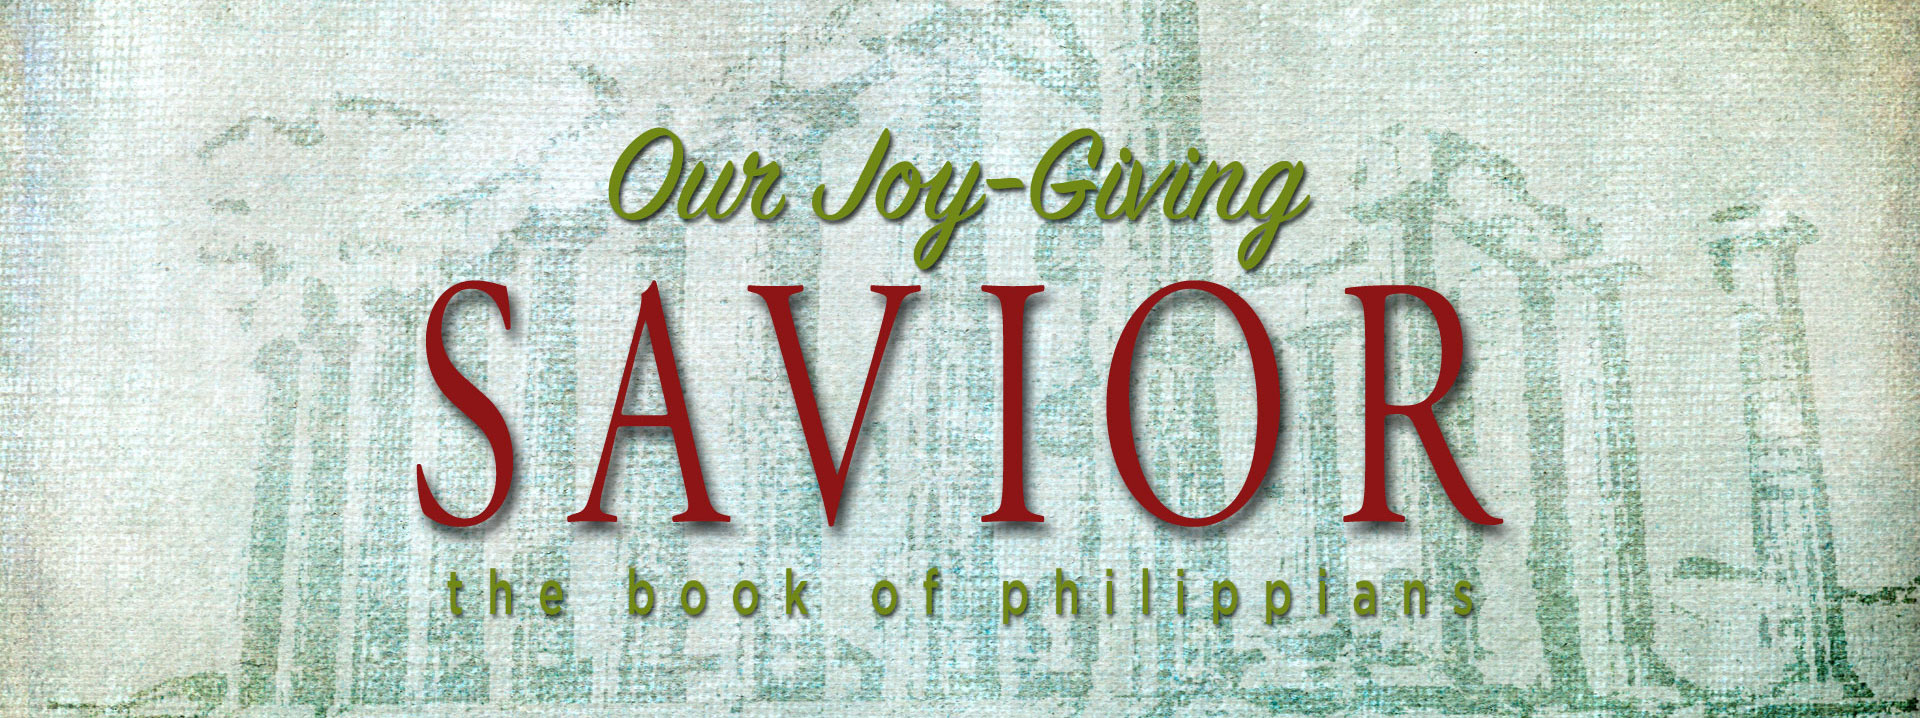 Our Joy-Giving Savior